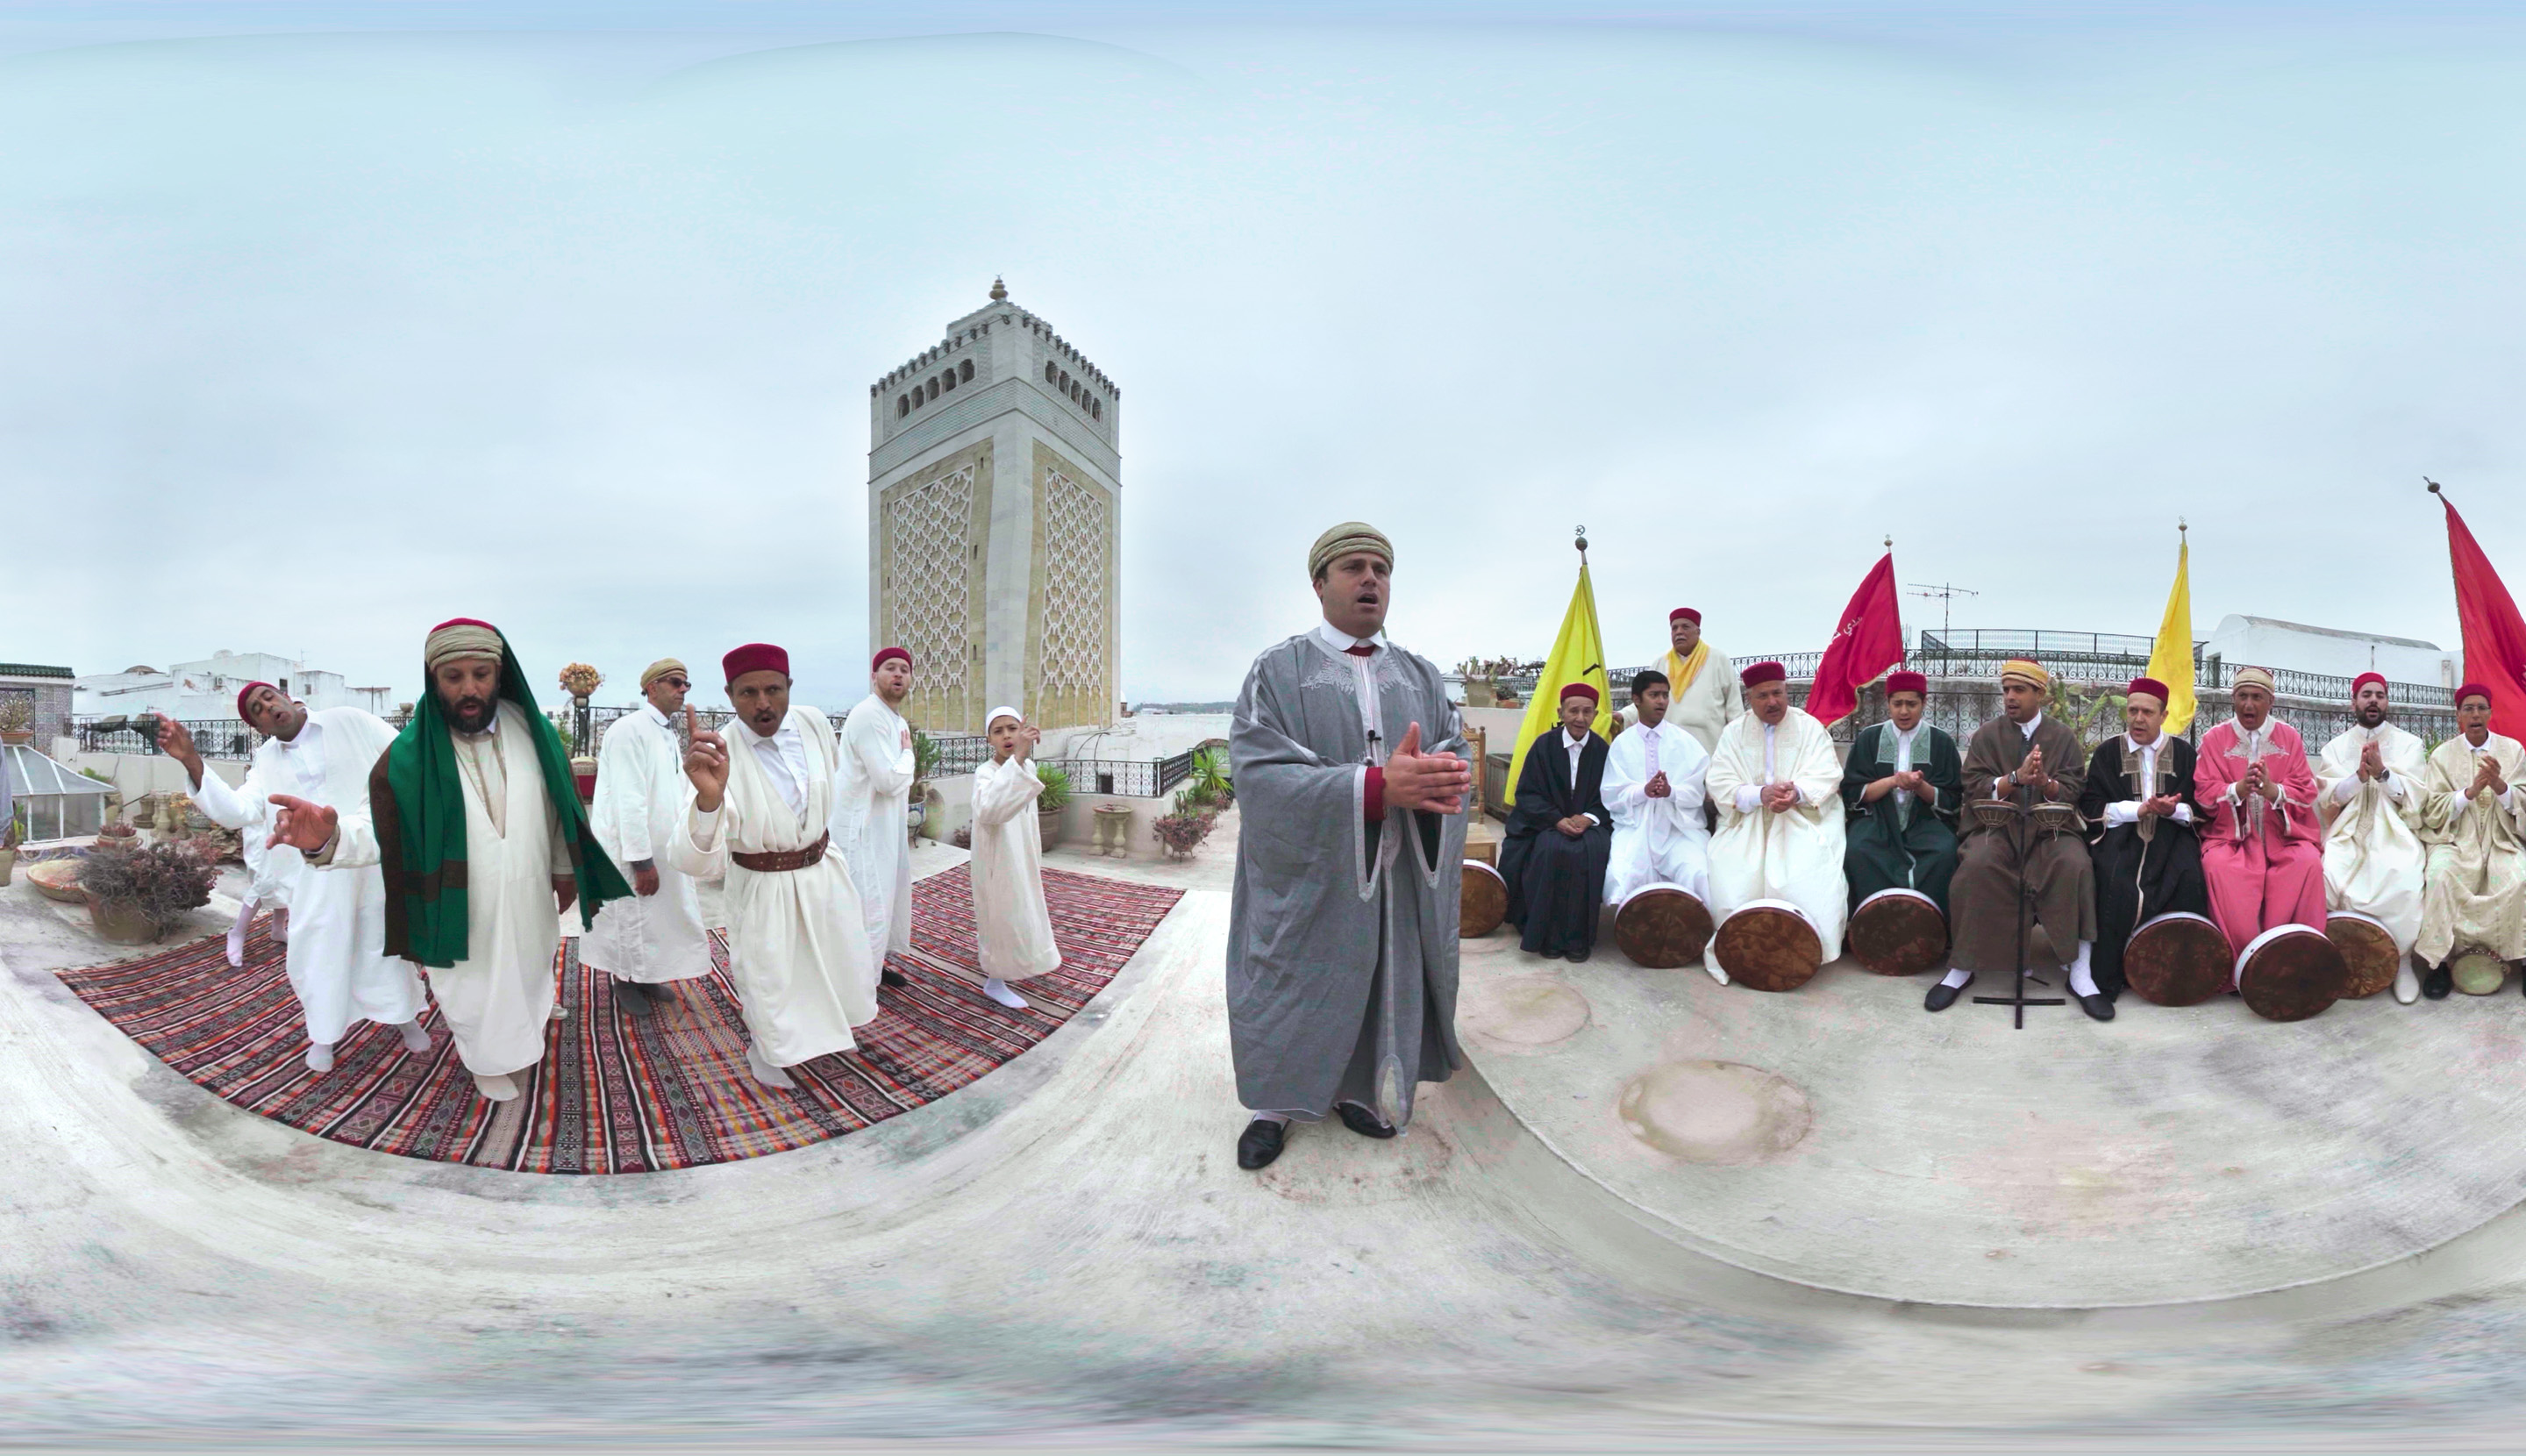 A still image from <i>Zikr: A Sufi Revival</i> by Gabo Arora, John Fitzgerald and Matthew Niederhauser, an official selection of the New Frontier VR Experiences program at the 2018 Sundance Film Festival. Courtesy of Sundance Institute. All photos are copyrighted and may be used by press only for the purpose of news or editorial coverage of Sundance Institute programs. Photos must be accompanied by a credit to the photographer and/or 'Courtesy of Sundance Institute.' Unauthorized use, alteration, reproduction or sale of logos and/or photos is strictly prohibited.